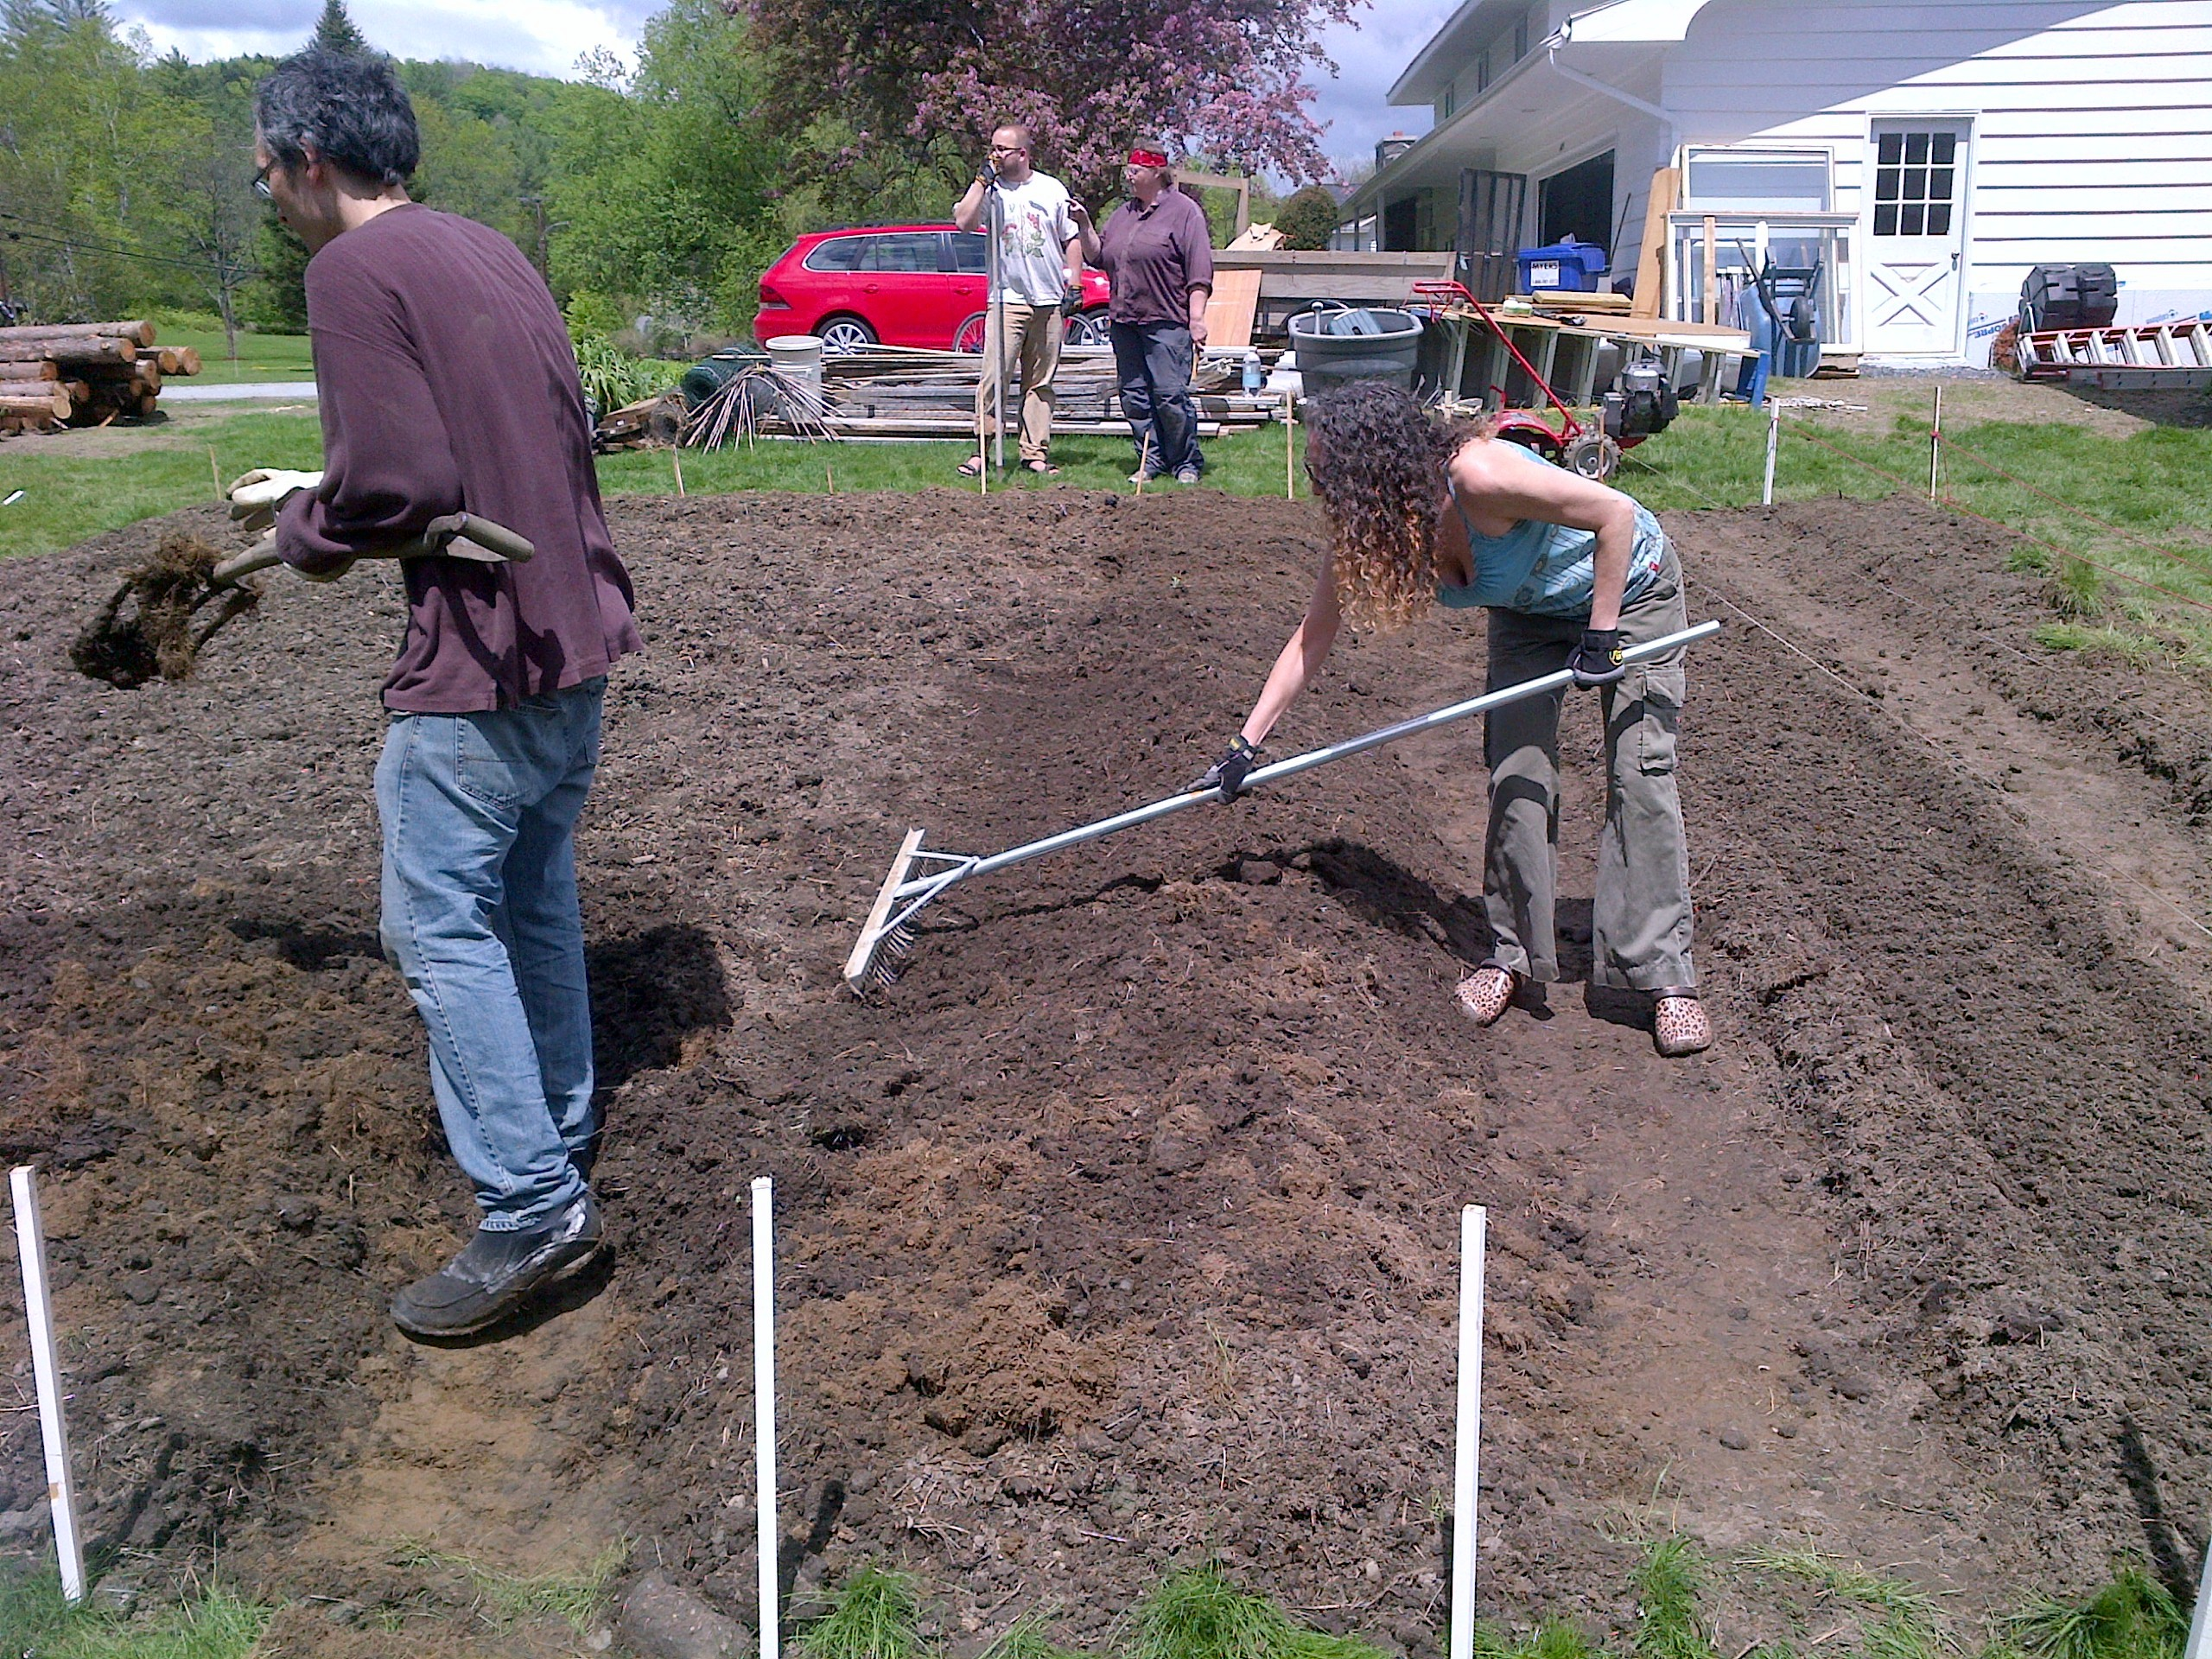 Hoeing rows